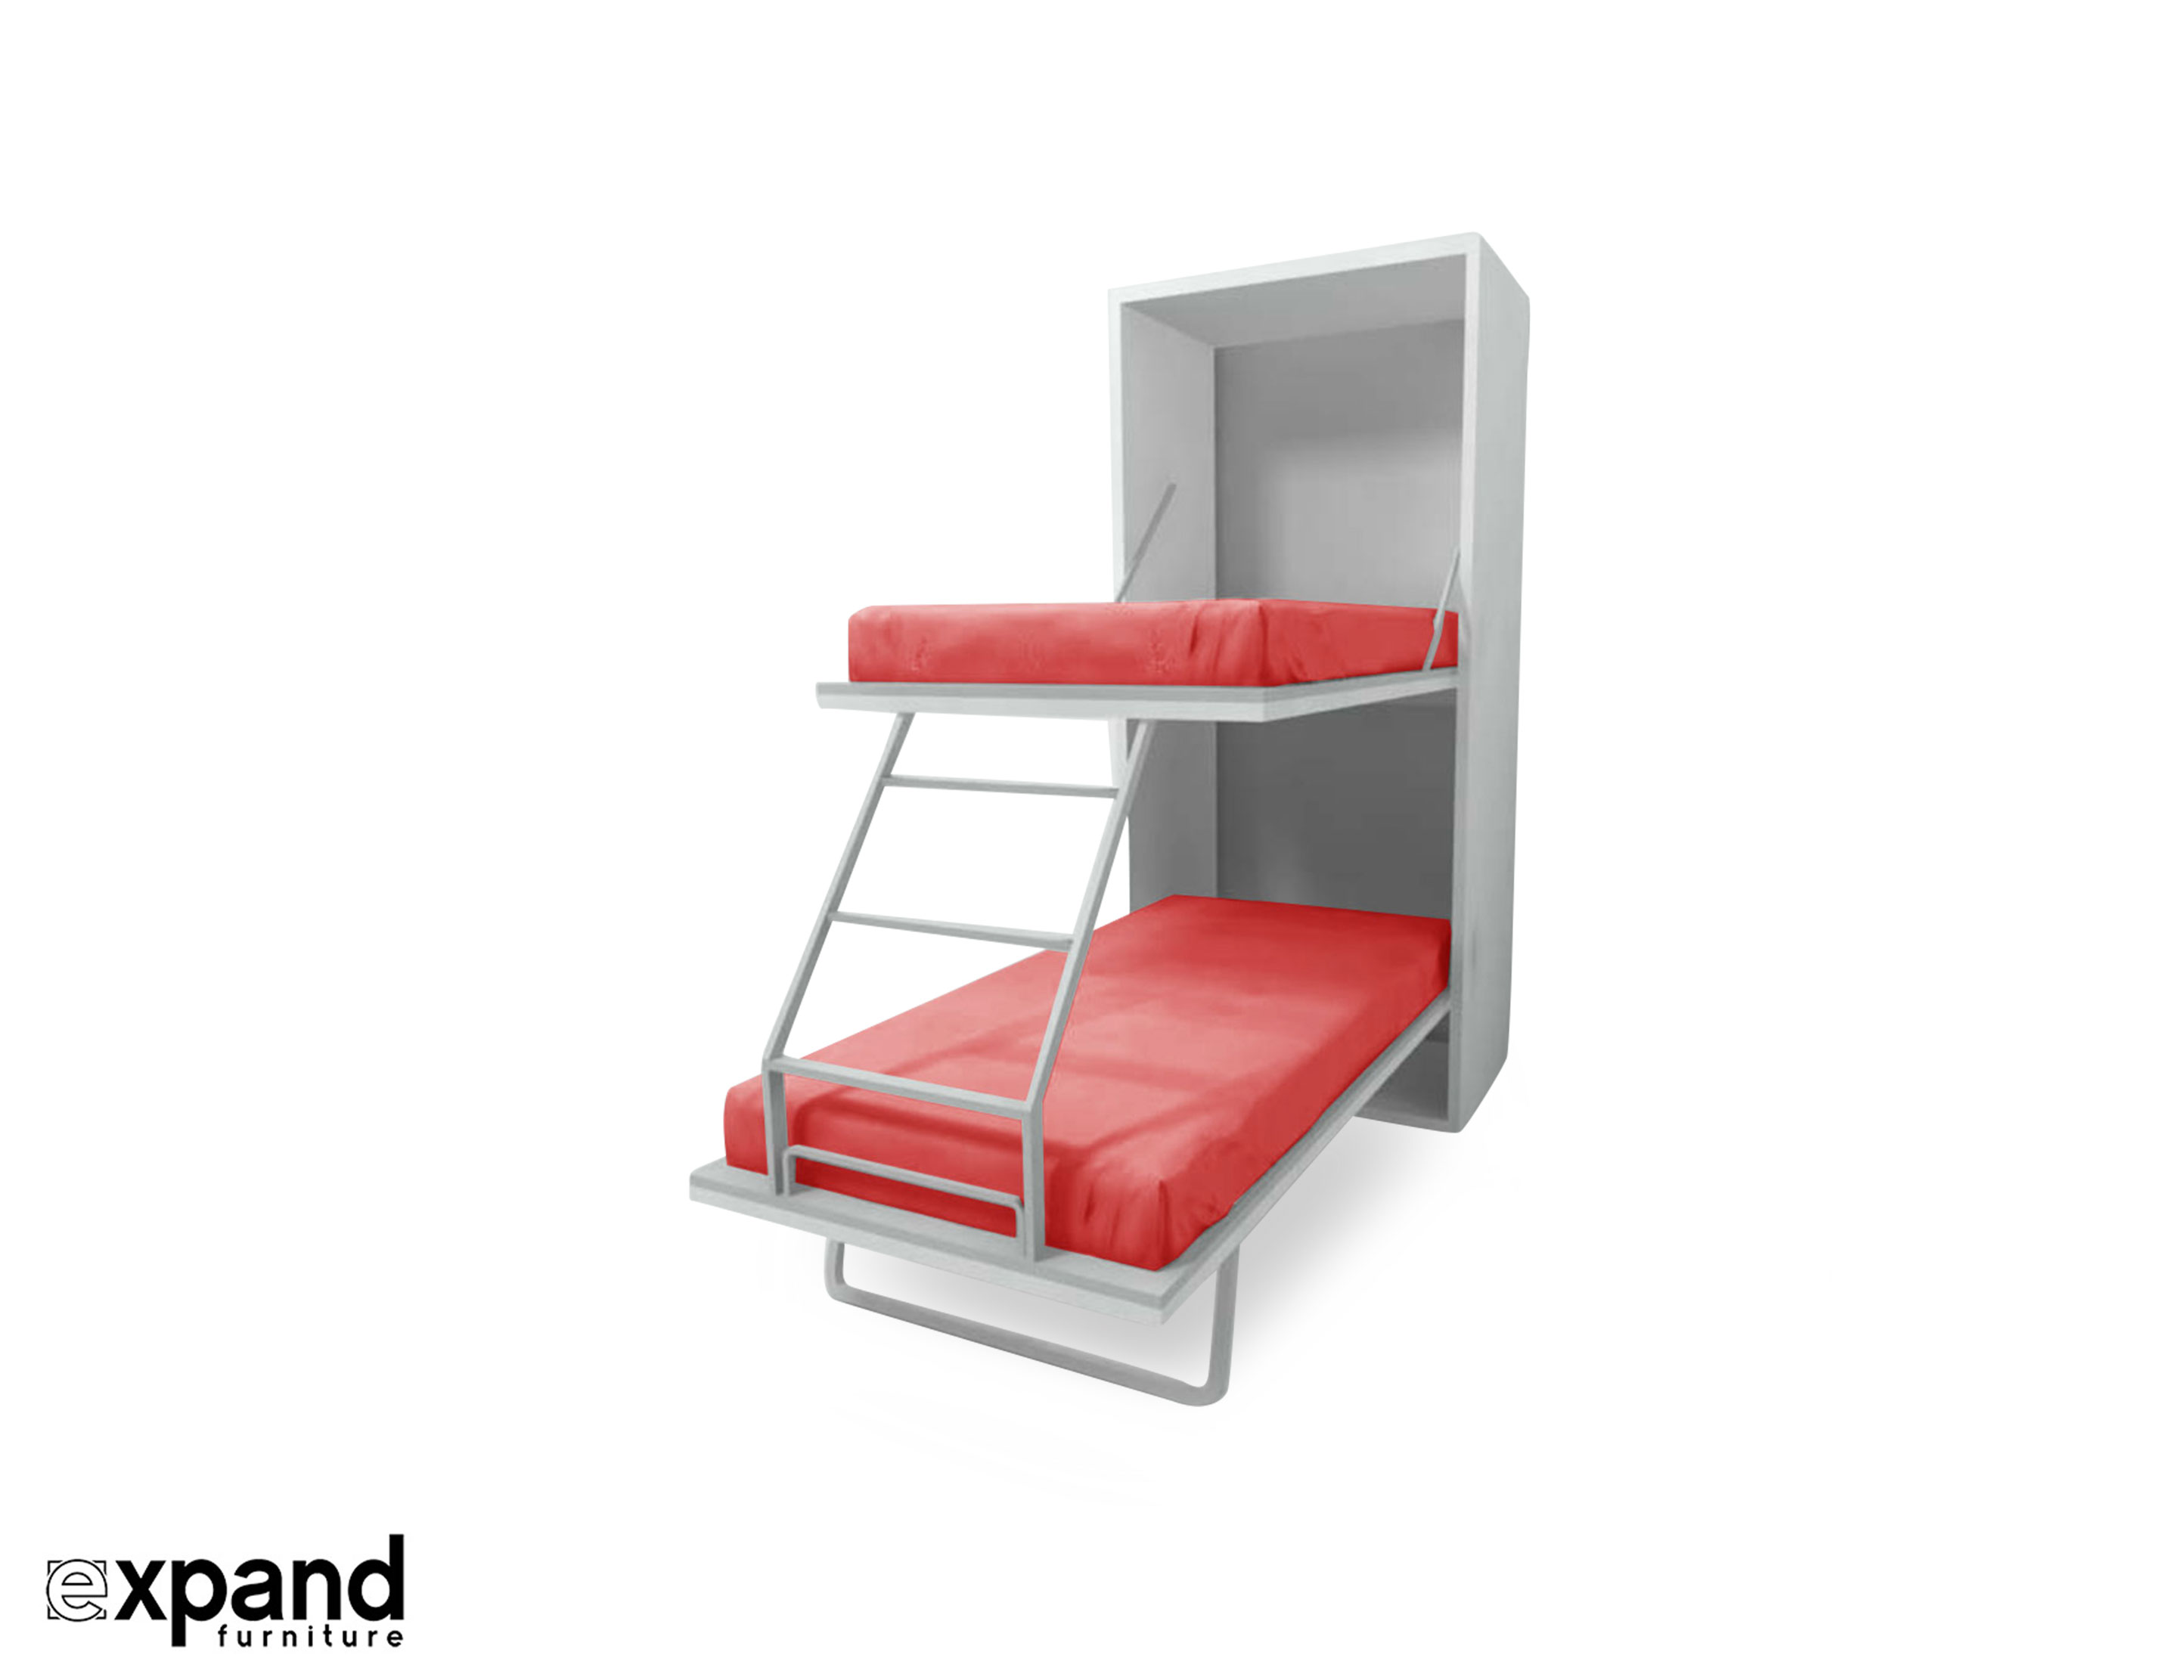 Fold Up Kids Bed Compatto Hidden Vertical Murphy Bunk Beds Expand Furniture